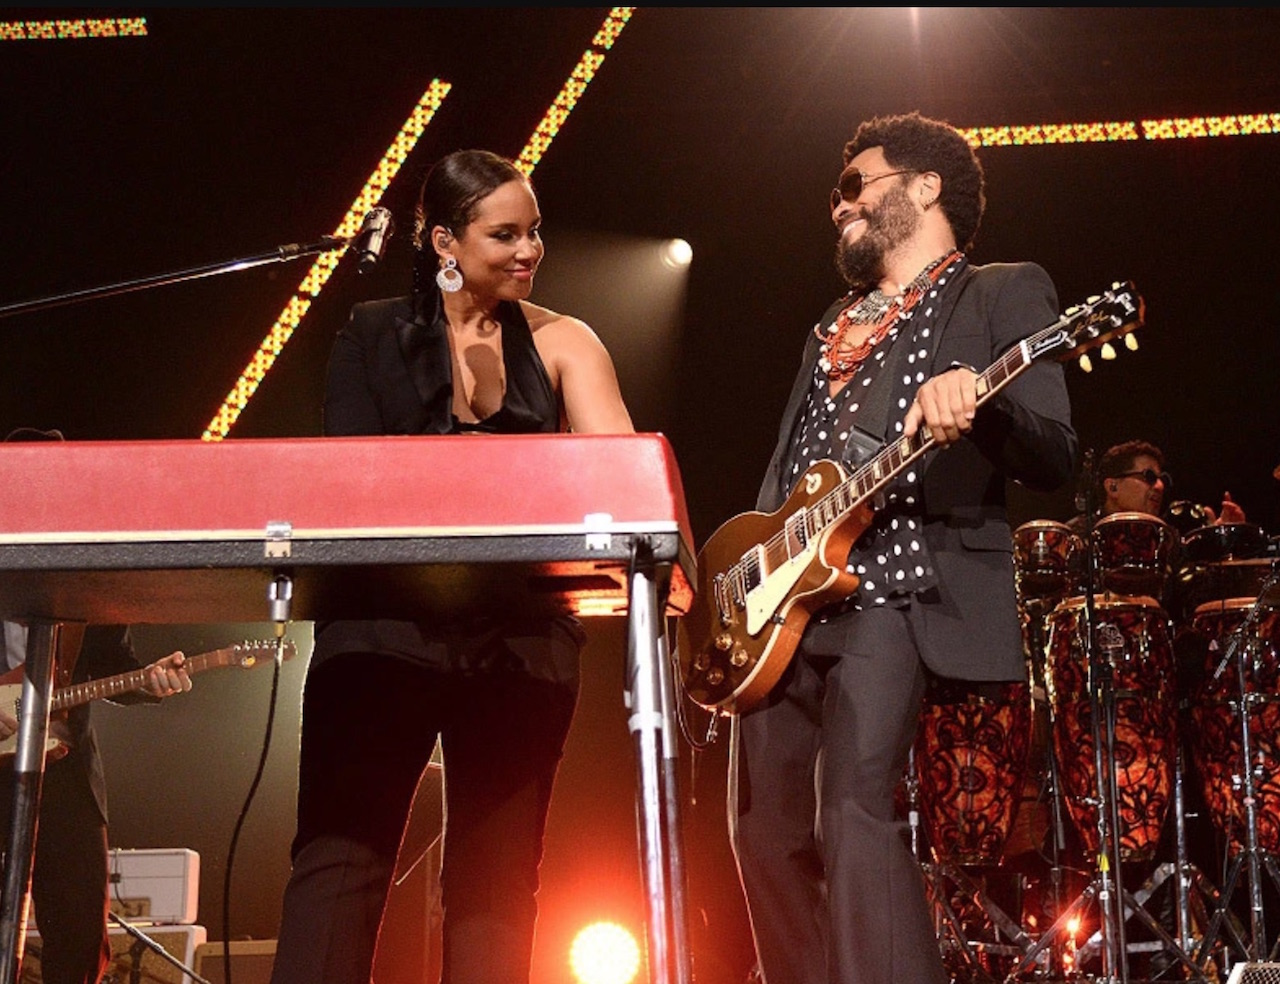 Alicia Keys and Lenny Kravitz perform at an event in 2015